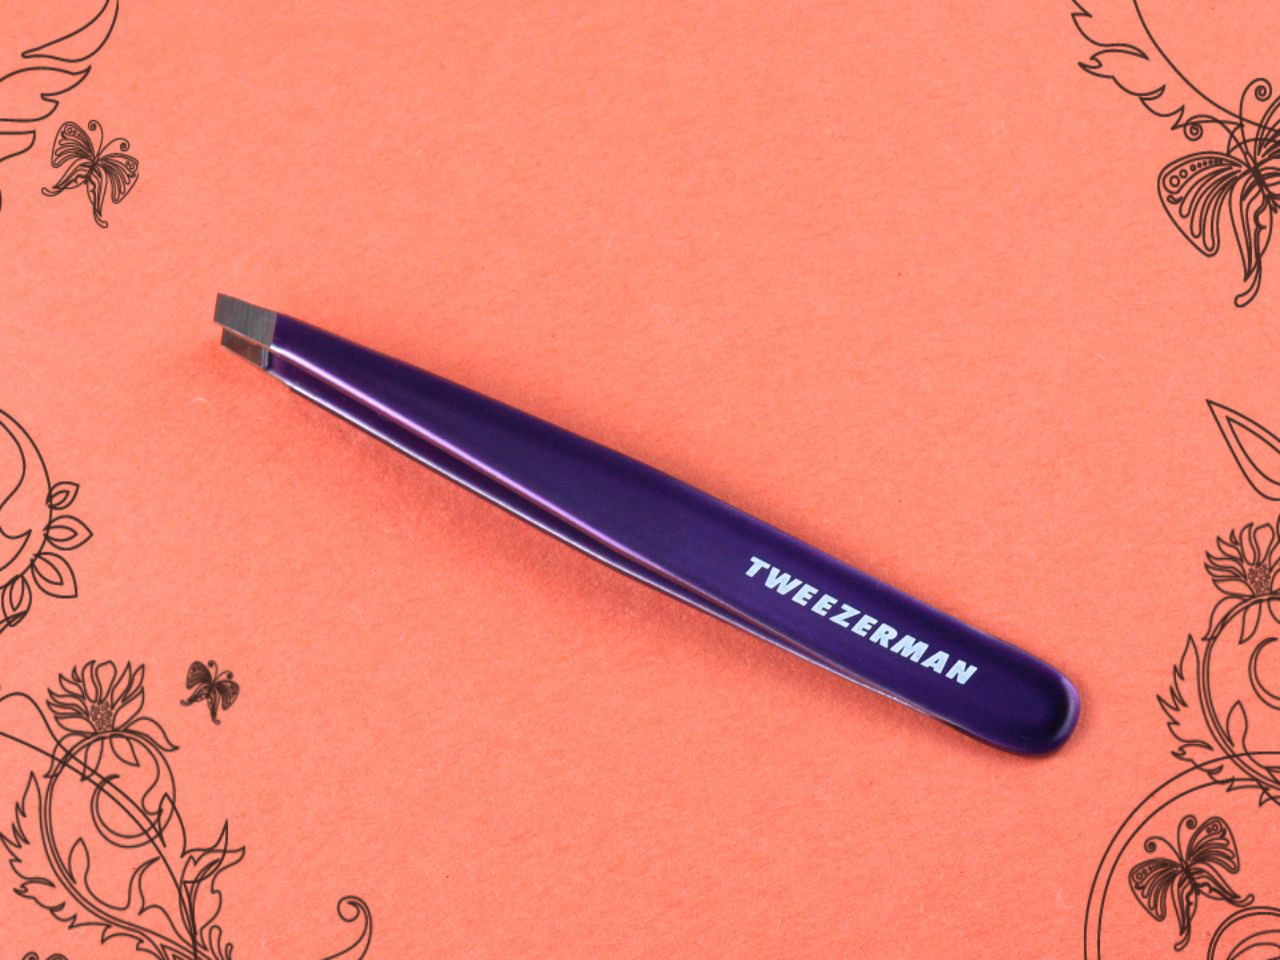 tweezerman slant tweezer brow mousse scissors brush review